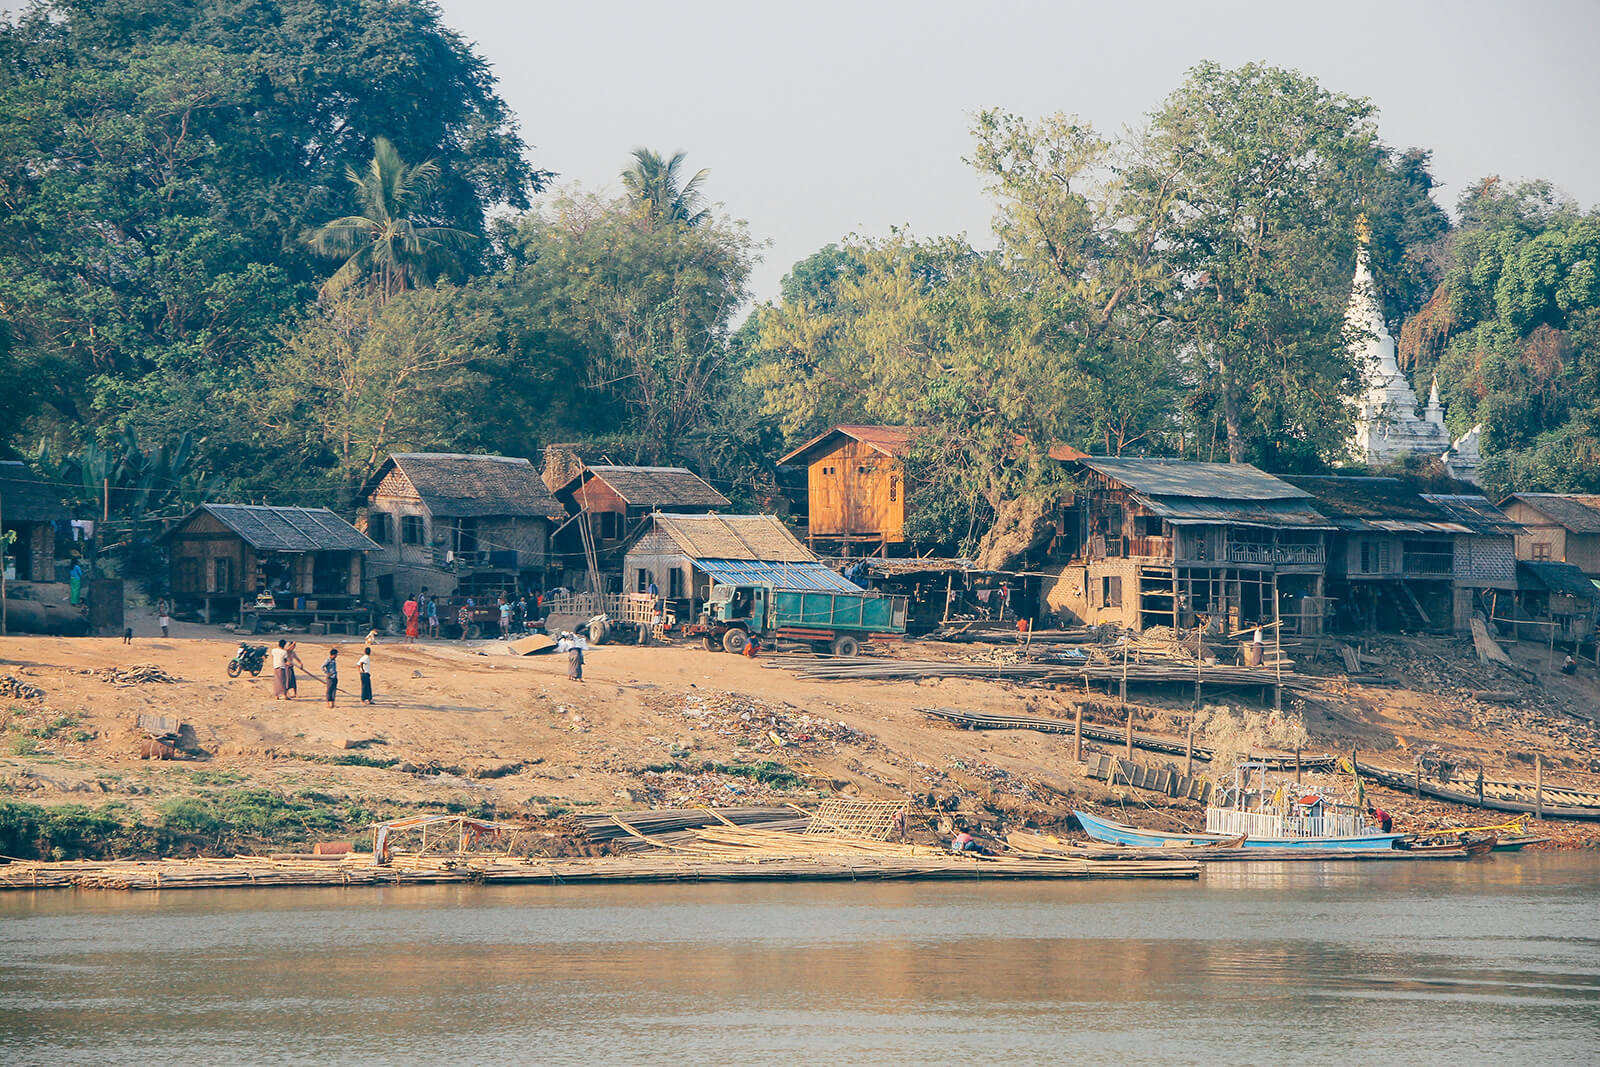 Traveling Myanmar by boat is the most authentic way to experience the countryside and local life